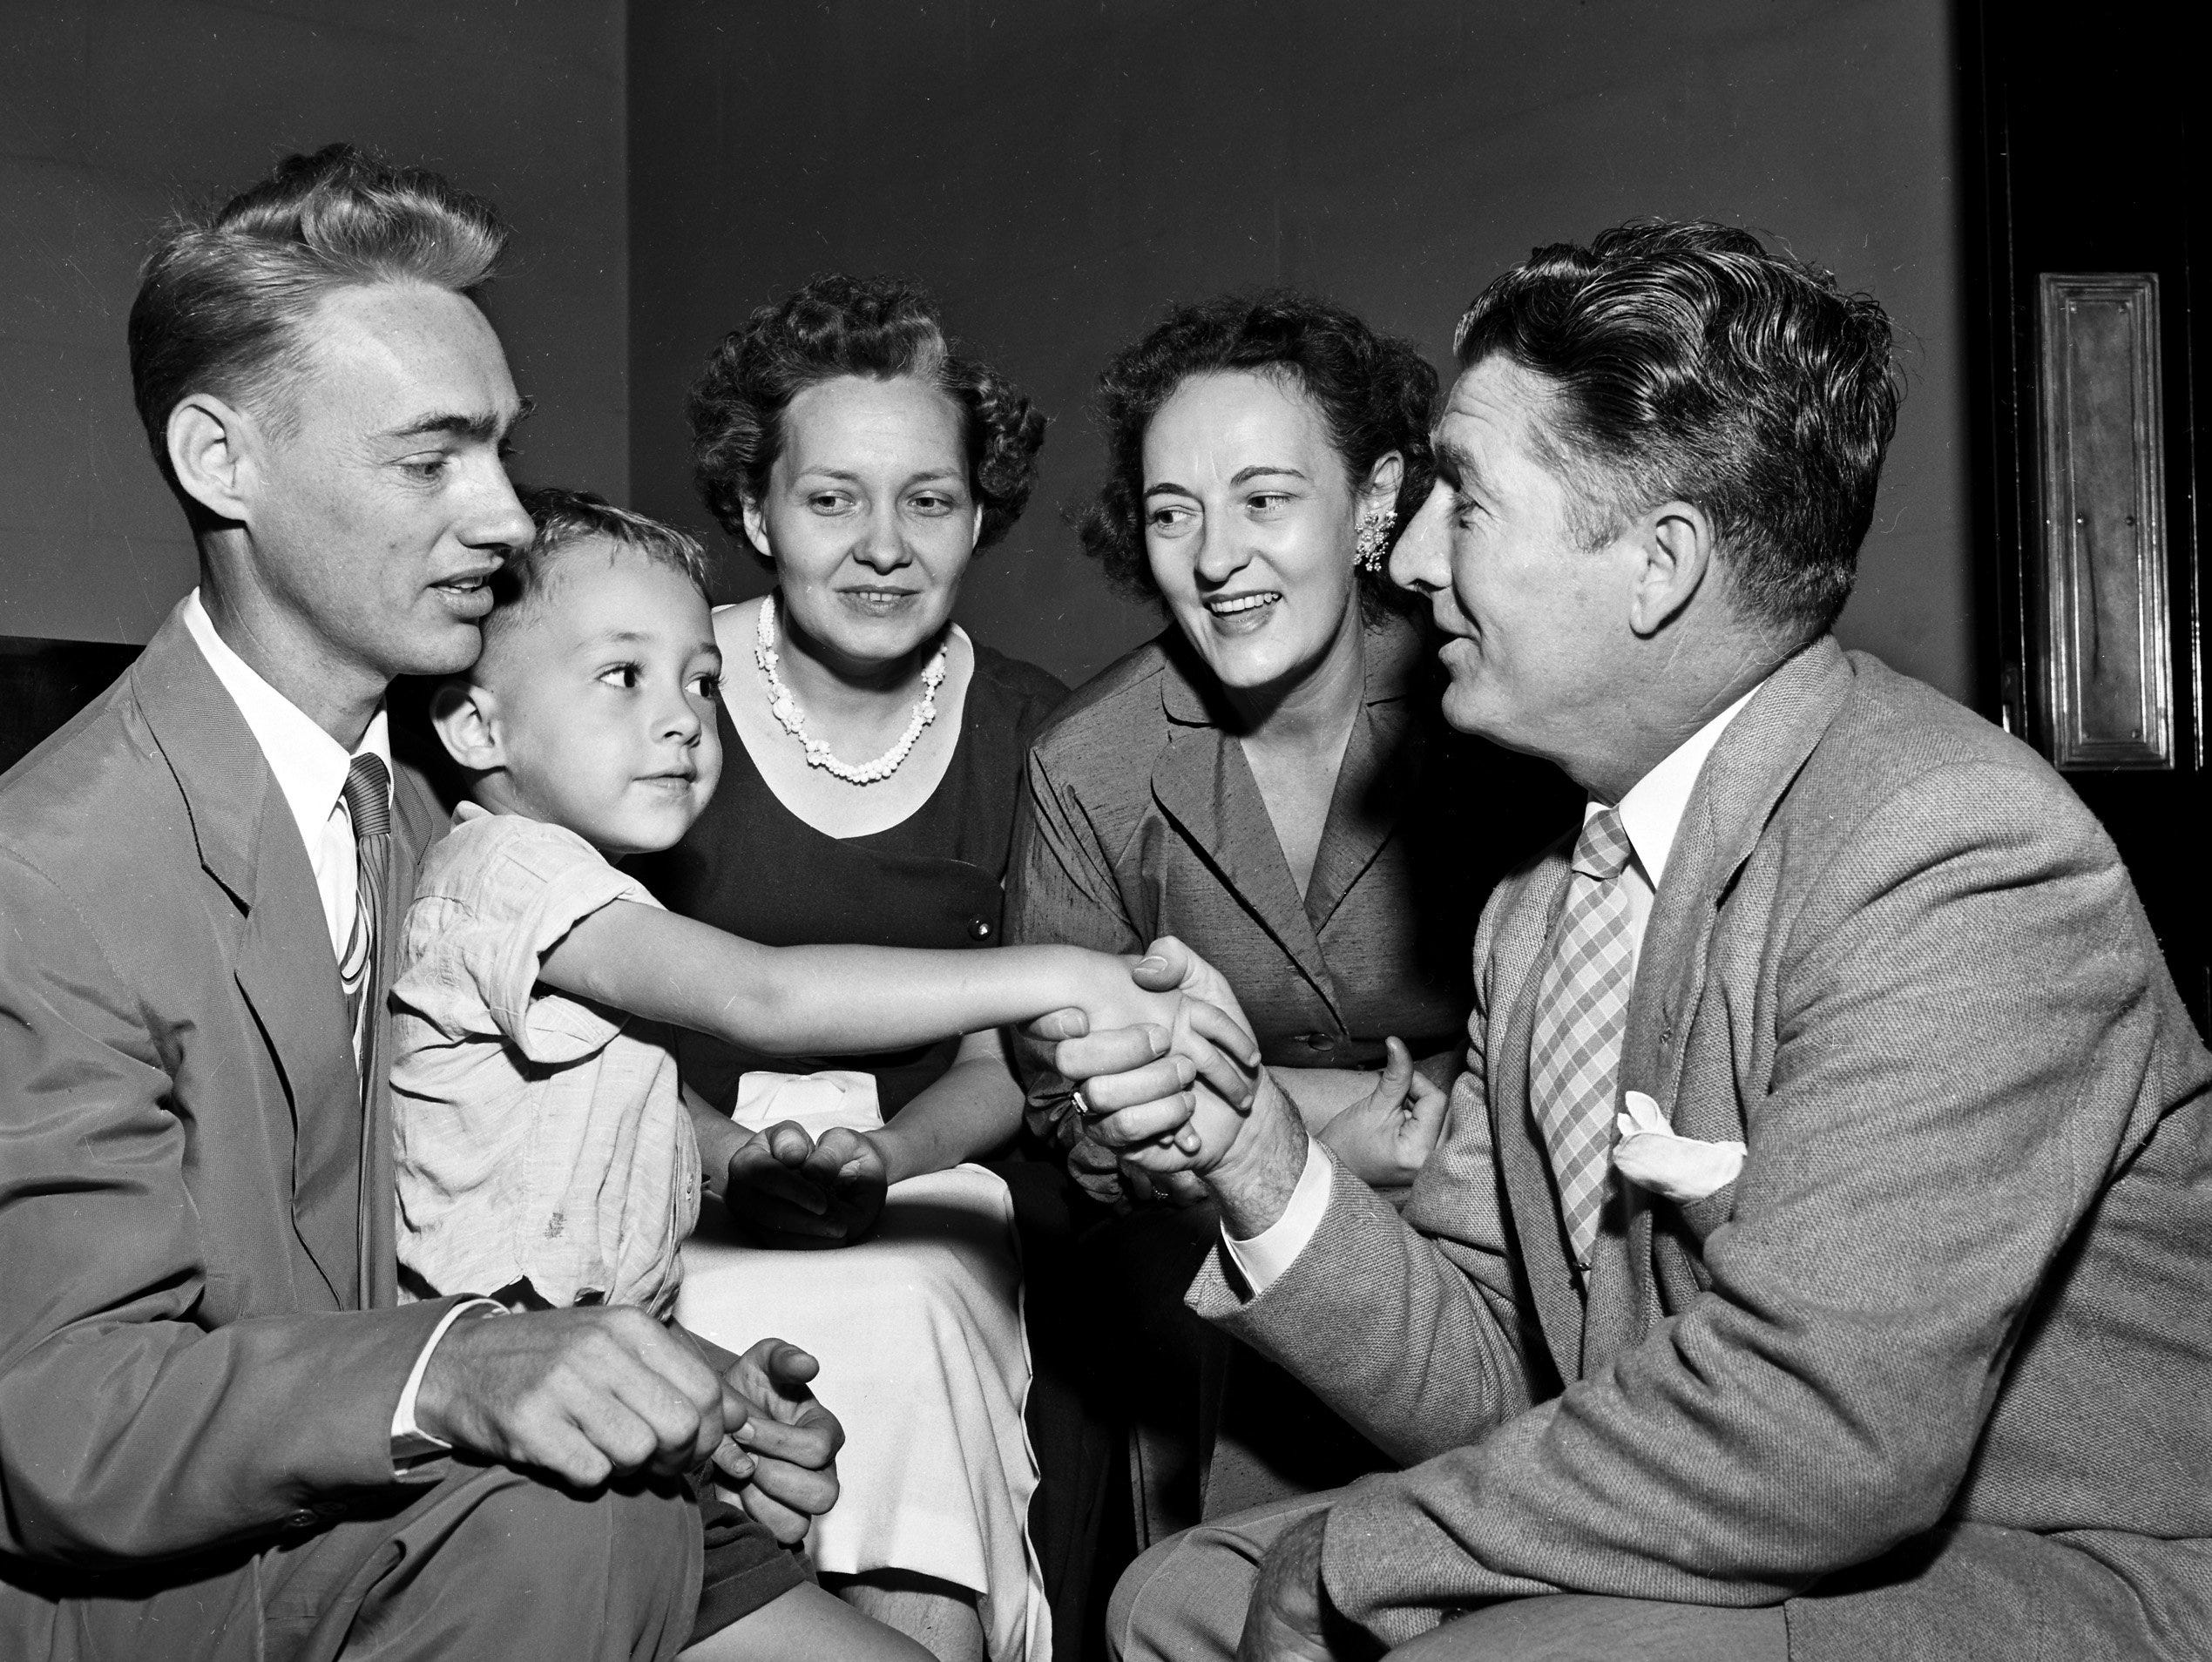 Four-year-old David Fitzpatrick was right along with his father, Earl Fitzpatrick (Left) and other members of the staff in congratulating George Herring (Right), who took the oath of office as Criminal Court clerk before Judge Perry Sellers (Not Shown) in September 1952.  Mr Firzpatrick is Mr. Herring's chief deputy clerk and Mrs. Emily Tharp (Center) and Mrs. Jewell Mottweiler (Second Right) are deputy clerks.